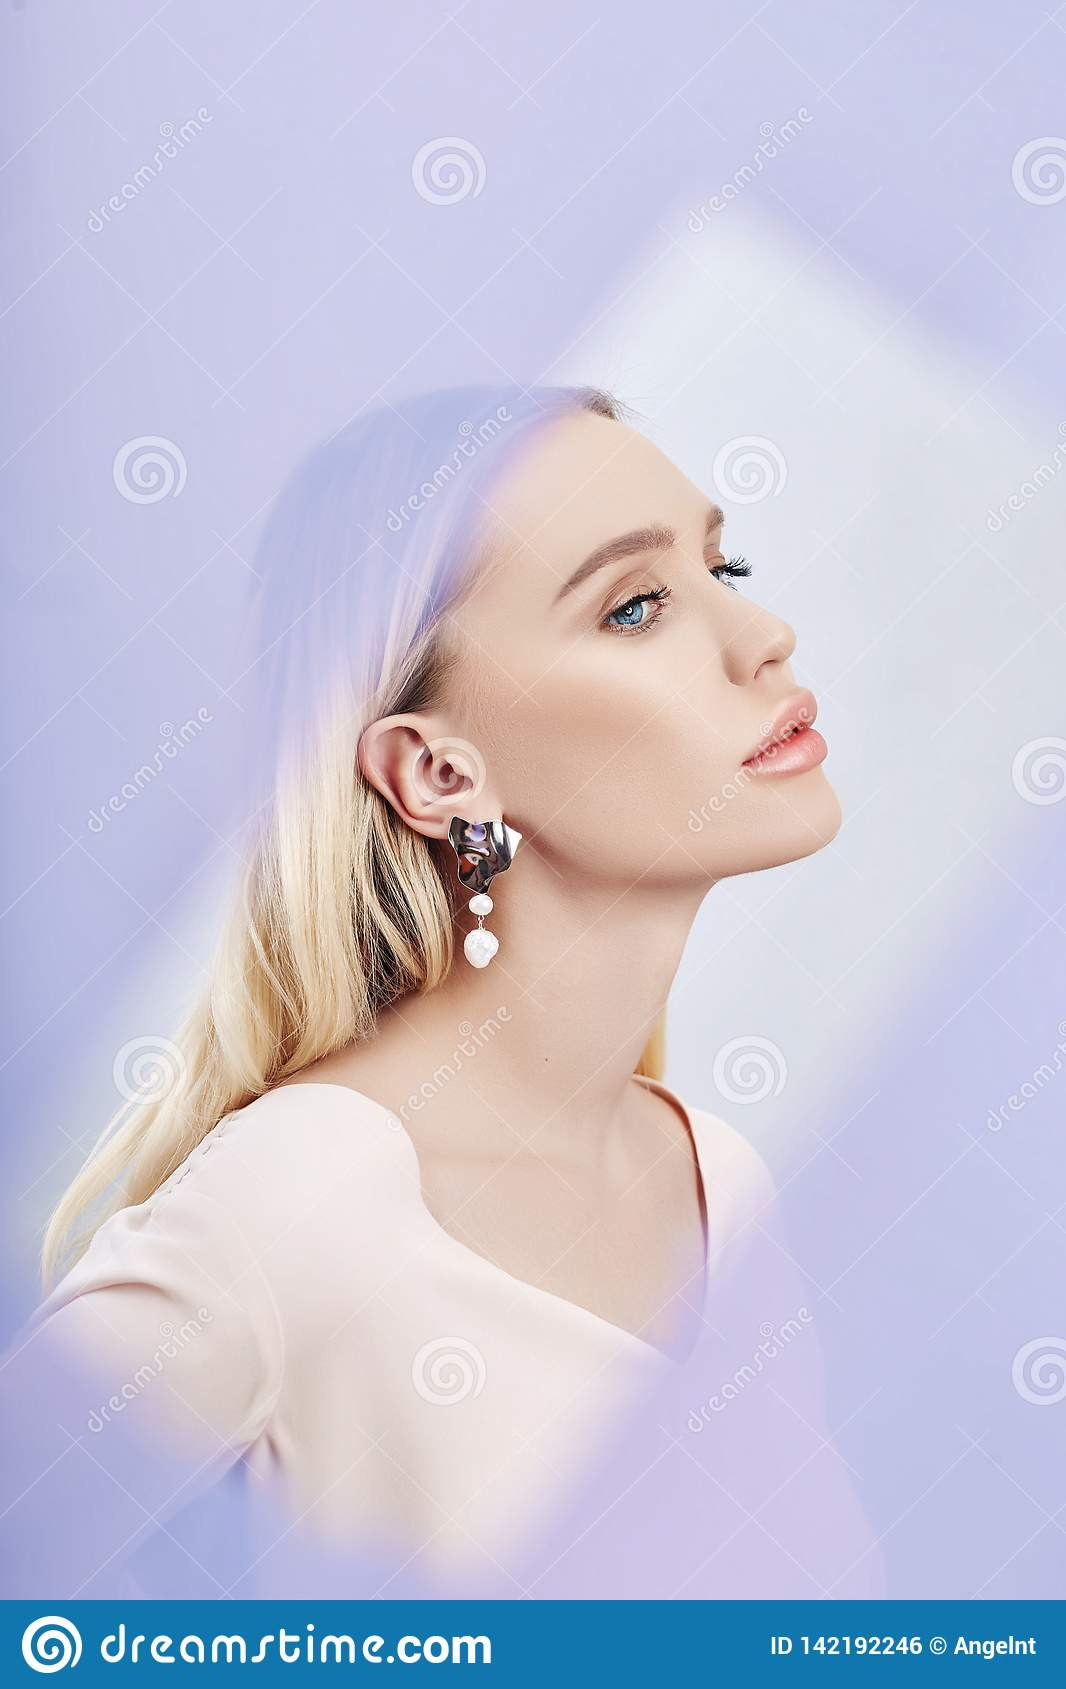 Earrings and jewelry in ear of a sexy blonde woman through a transparent colored fabric. Perfect blonde girl, gorgeous mysterious